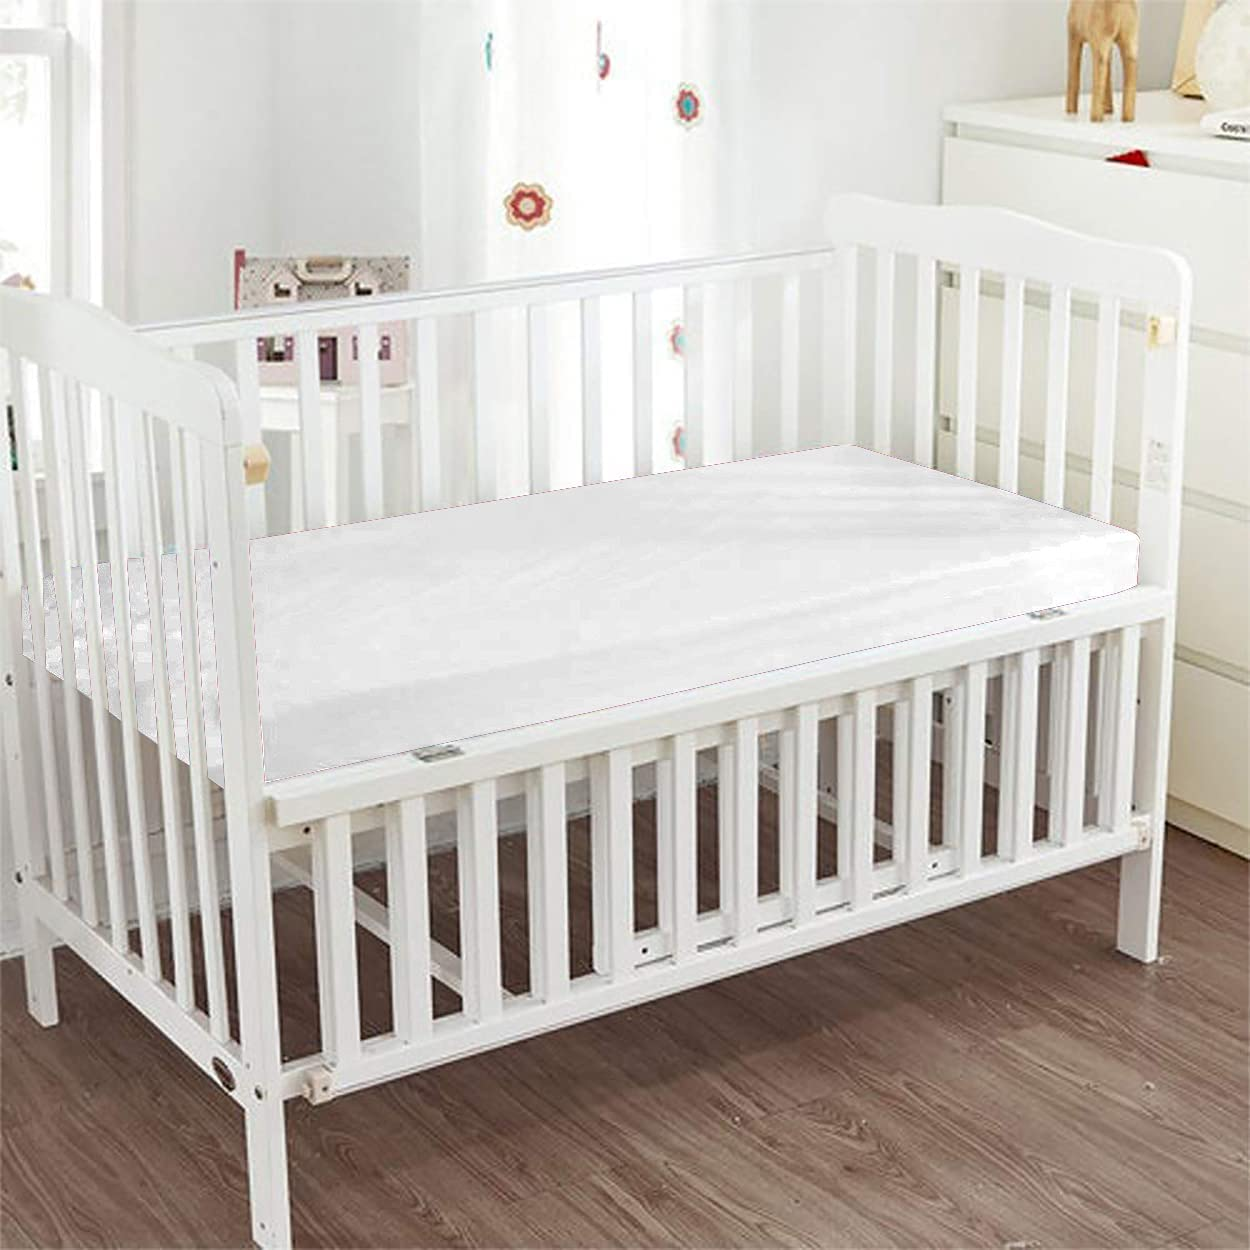 GetBedding - Fitted Crib Sheet Solid Egyptian 100% Cotto San Antonio Mall Ranking TOP8 Color